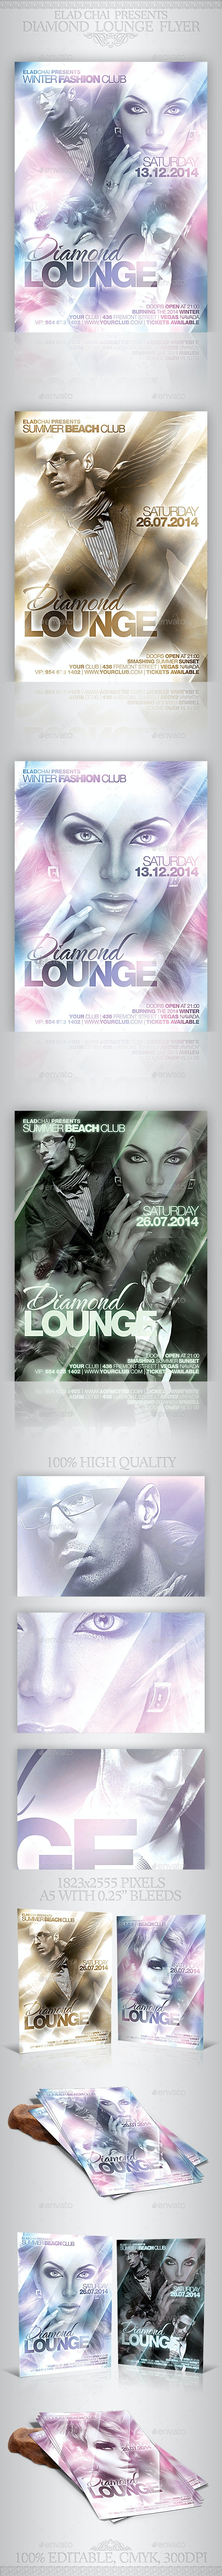 Diamond Lounge Winter Flyer Template - Clubs & Parties Events